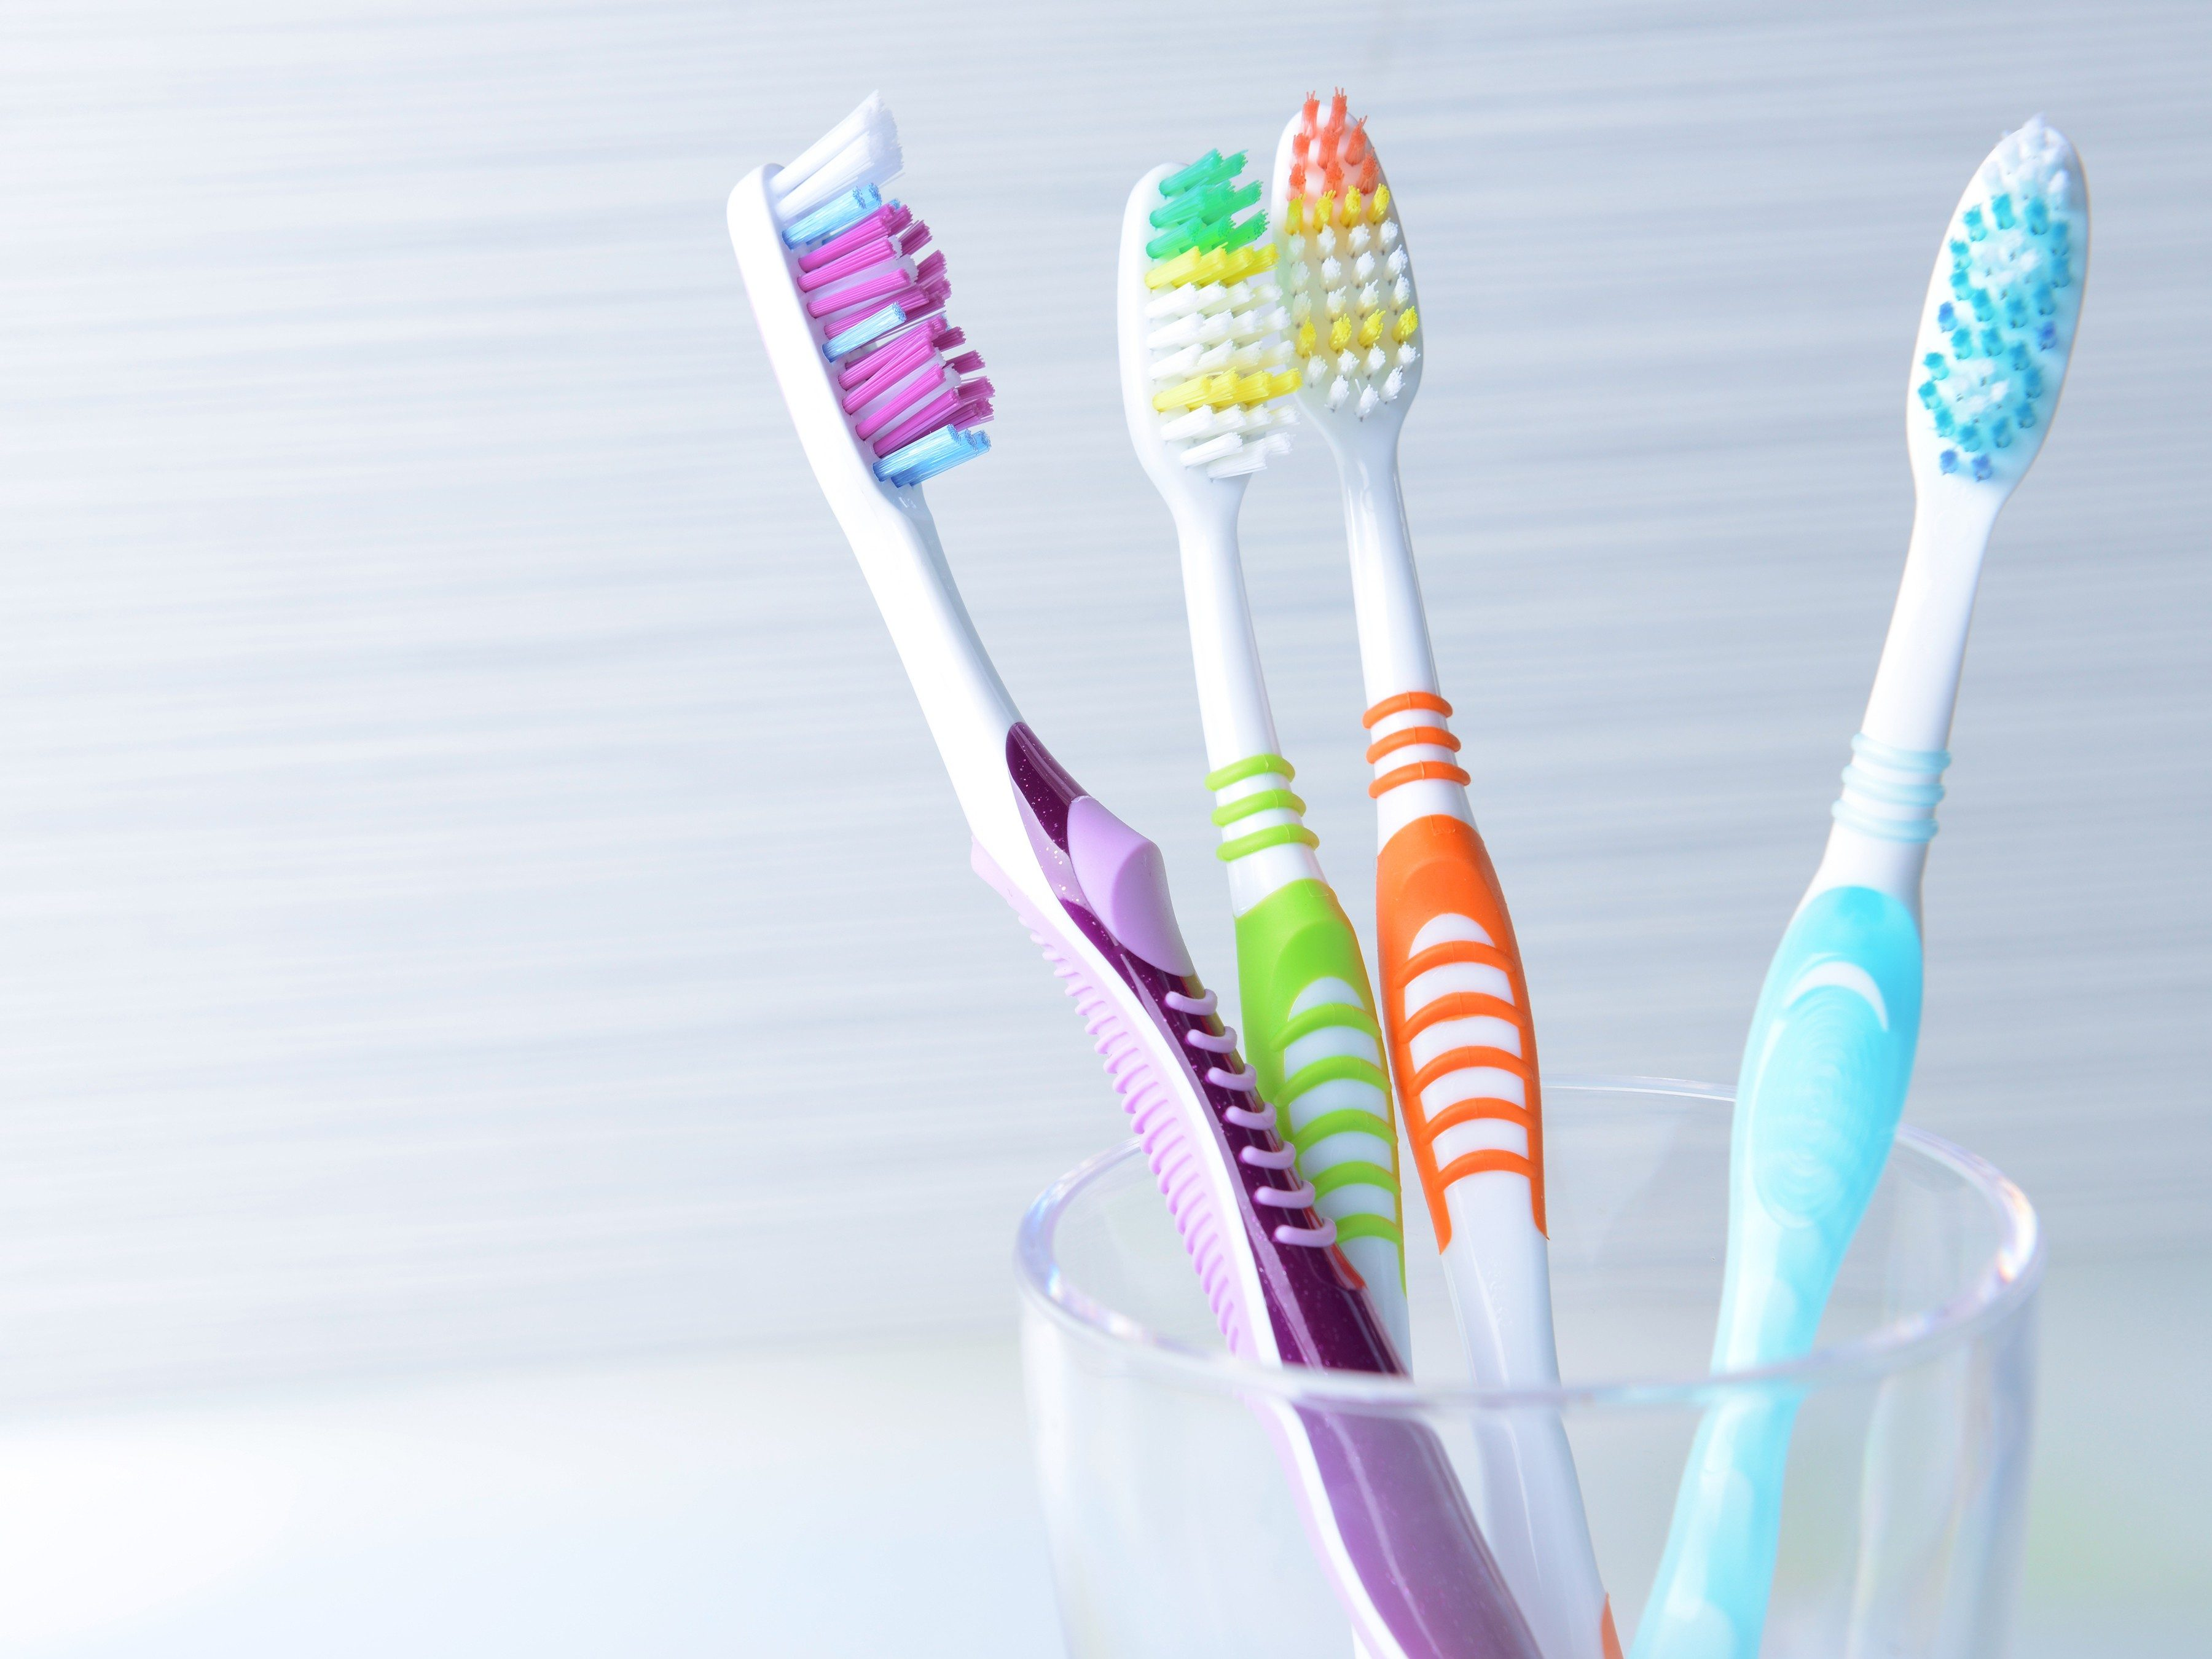 8. Germs love toothbrushes.